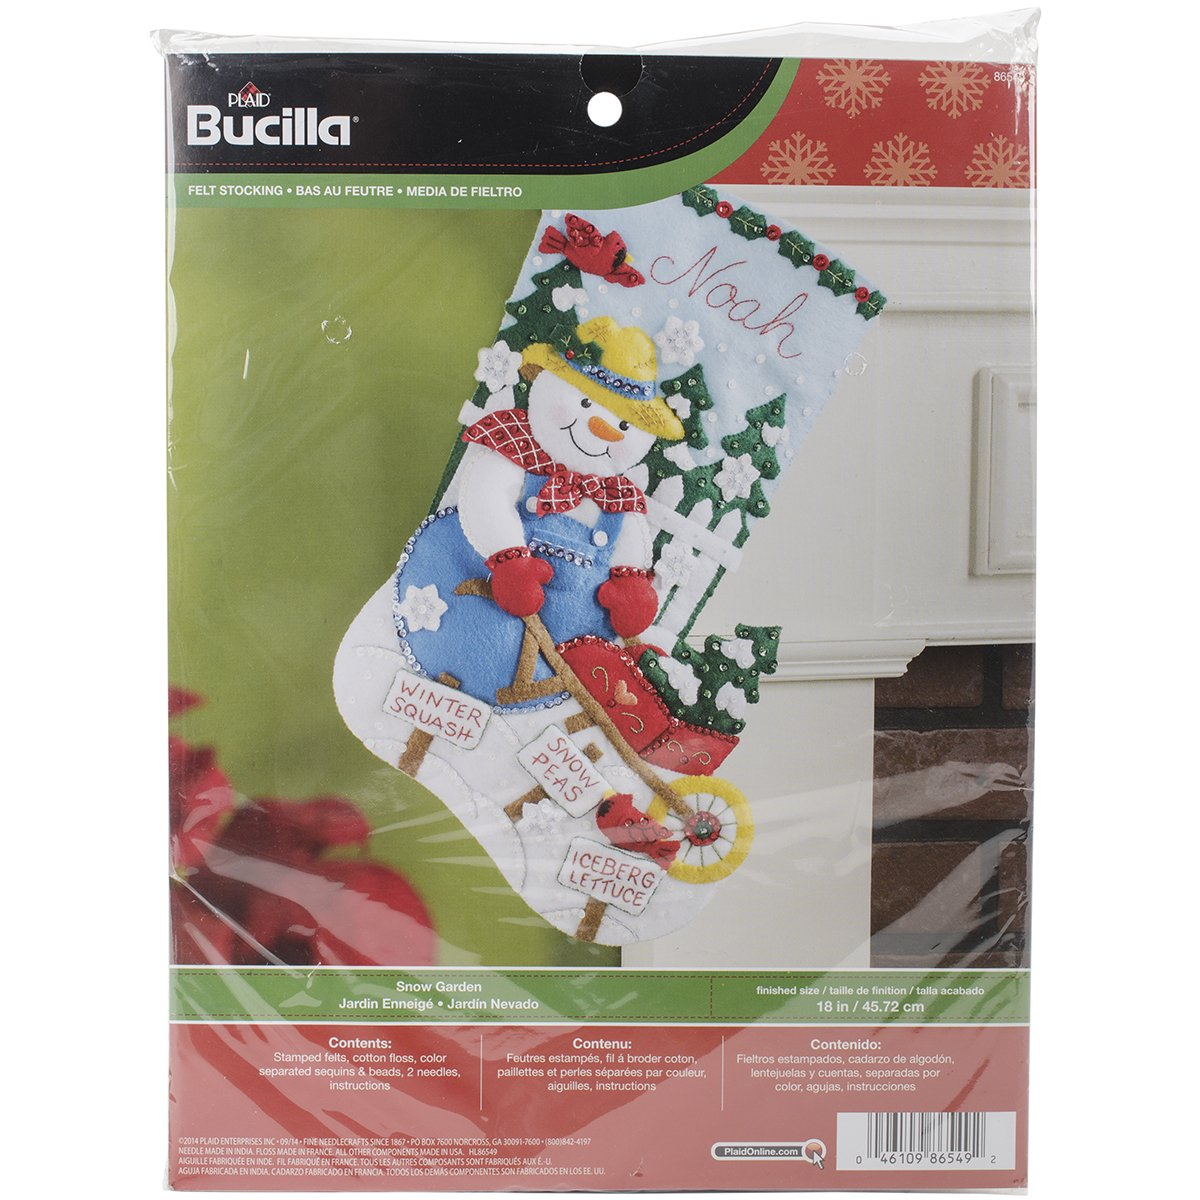 BUCILLA 86549 Snow Garden Felt Applique Stocking Kit, 18-Inch